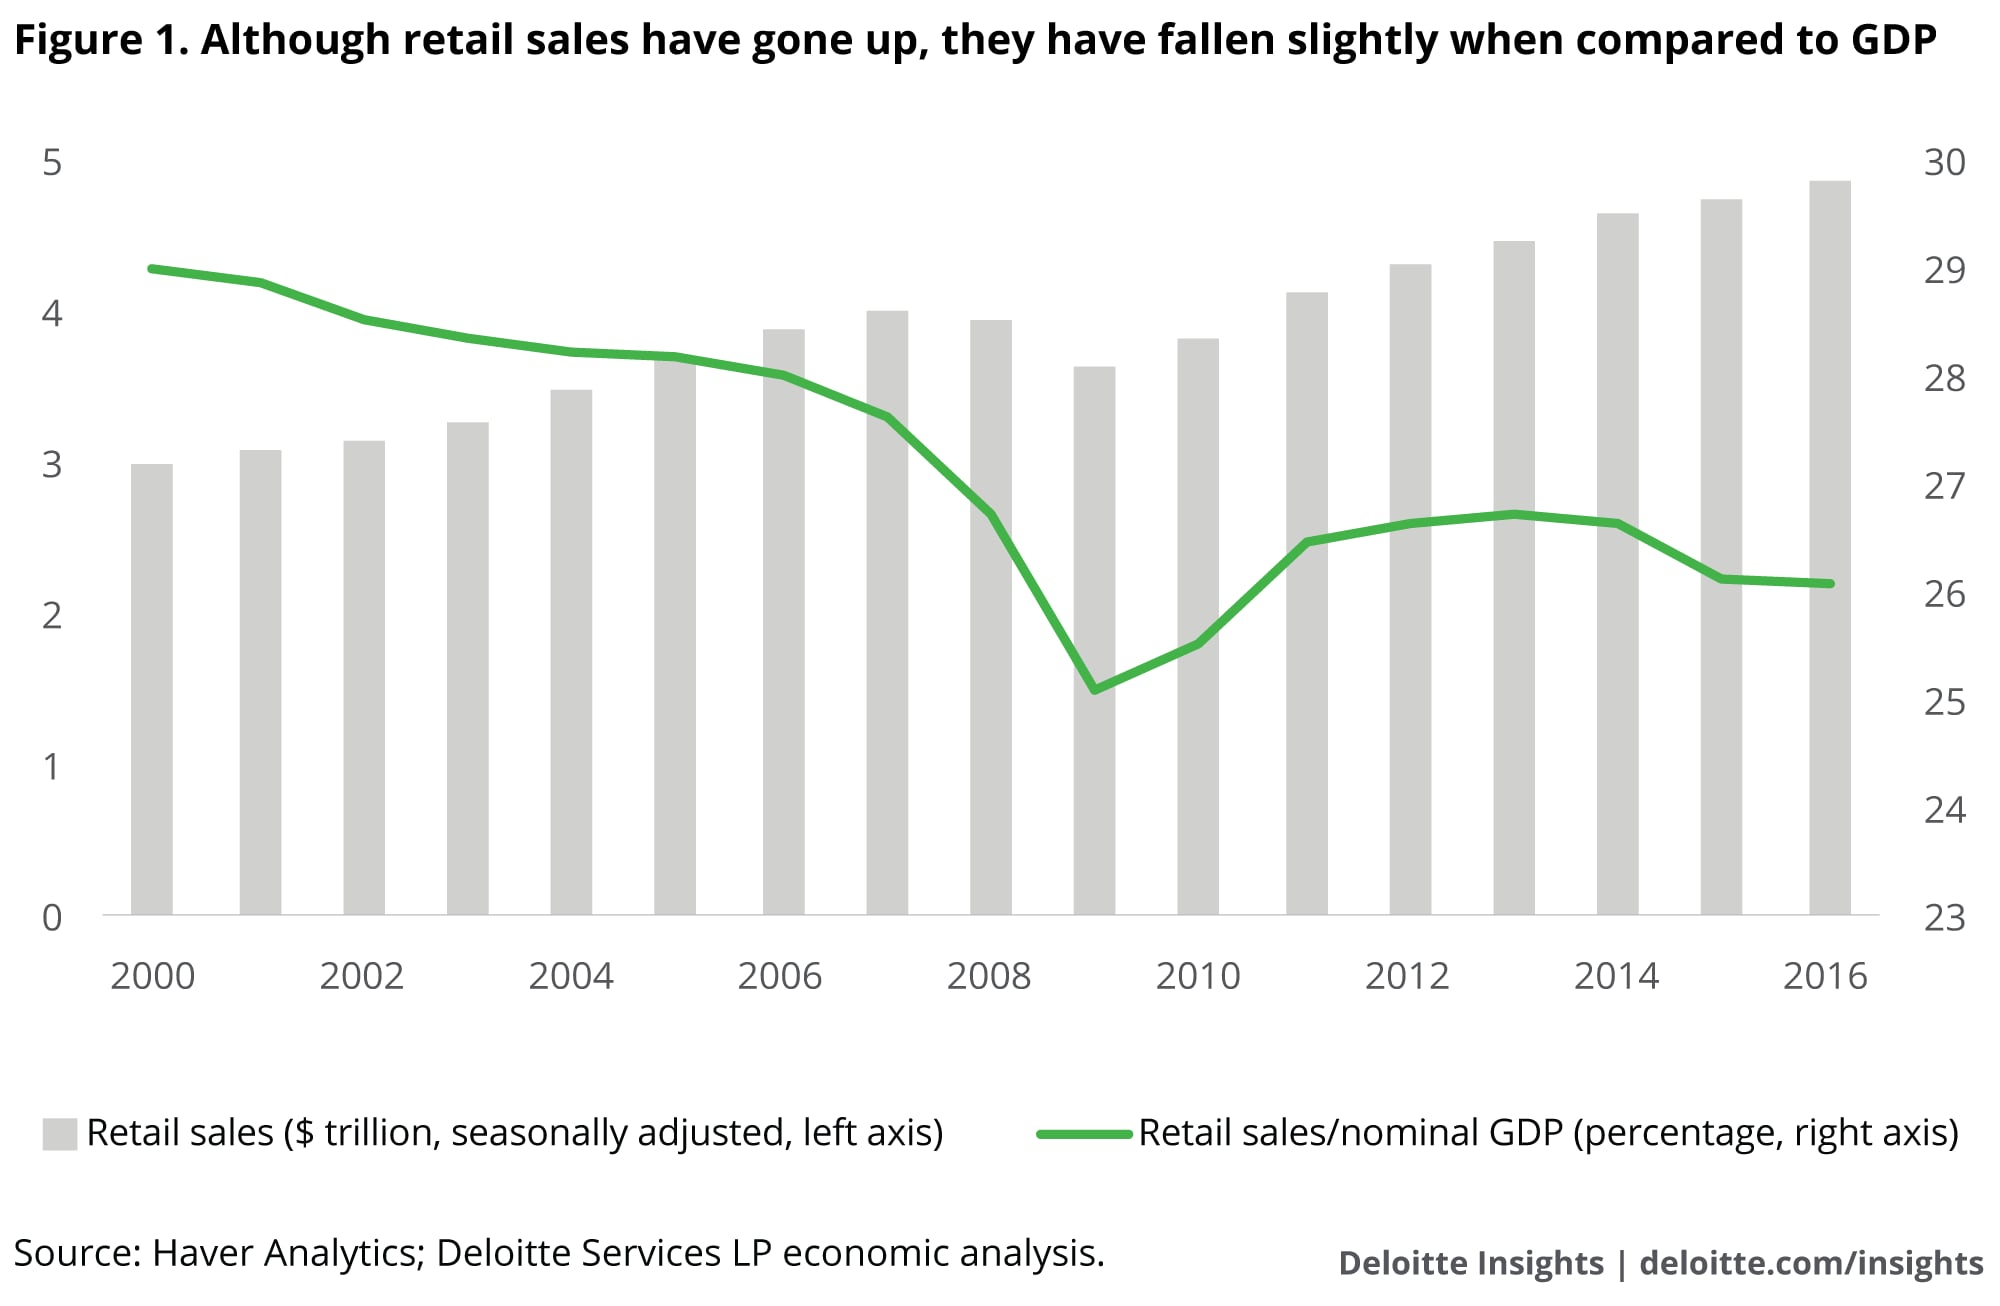 Although retail sales have gone up, they have fallen slightly when compared to GDP